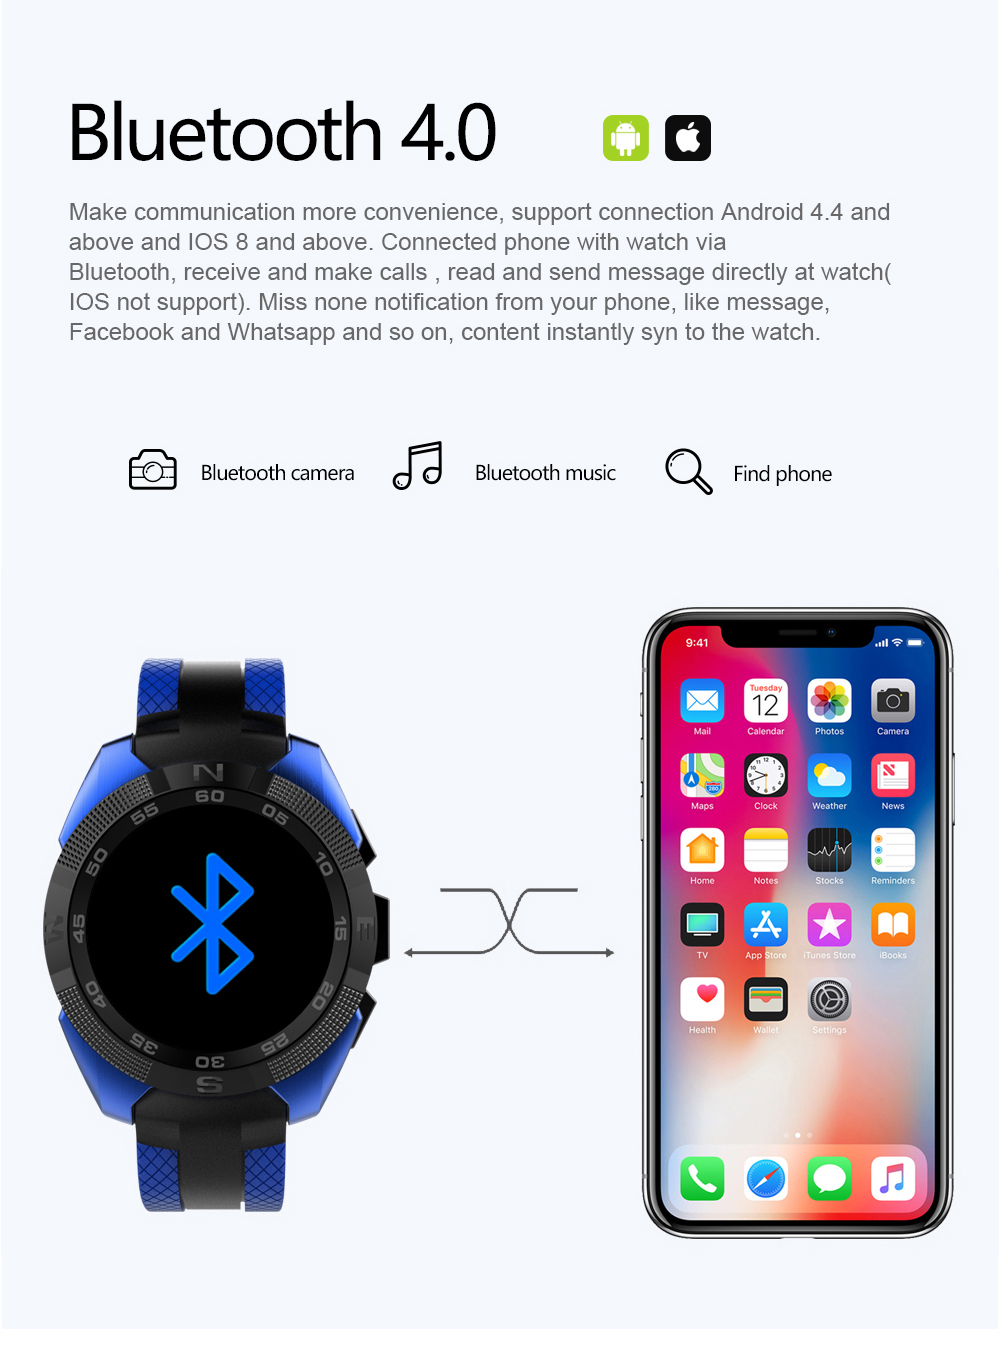 images/wholesale-electronics-2019/Bluetooth-Smartwatch-105mm-Ultra-Thin-Dial-Heart-rate-Monitor-Pedometer-154-inch-display-plusbuyer_95.jpg